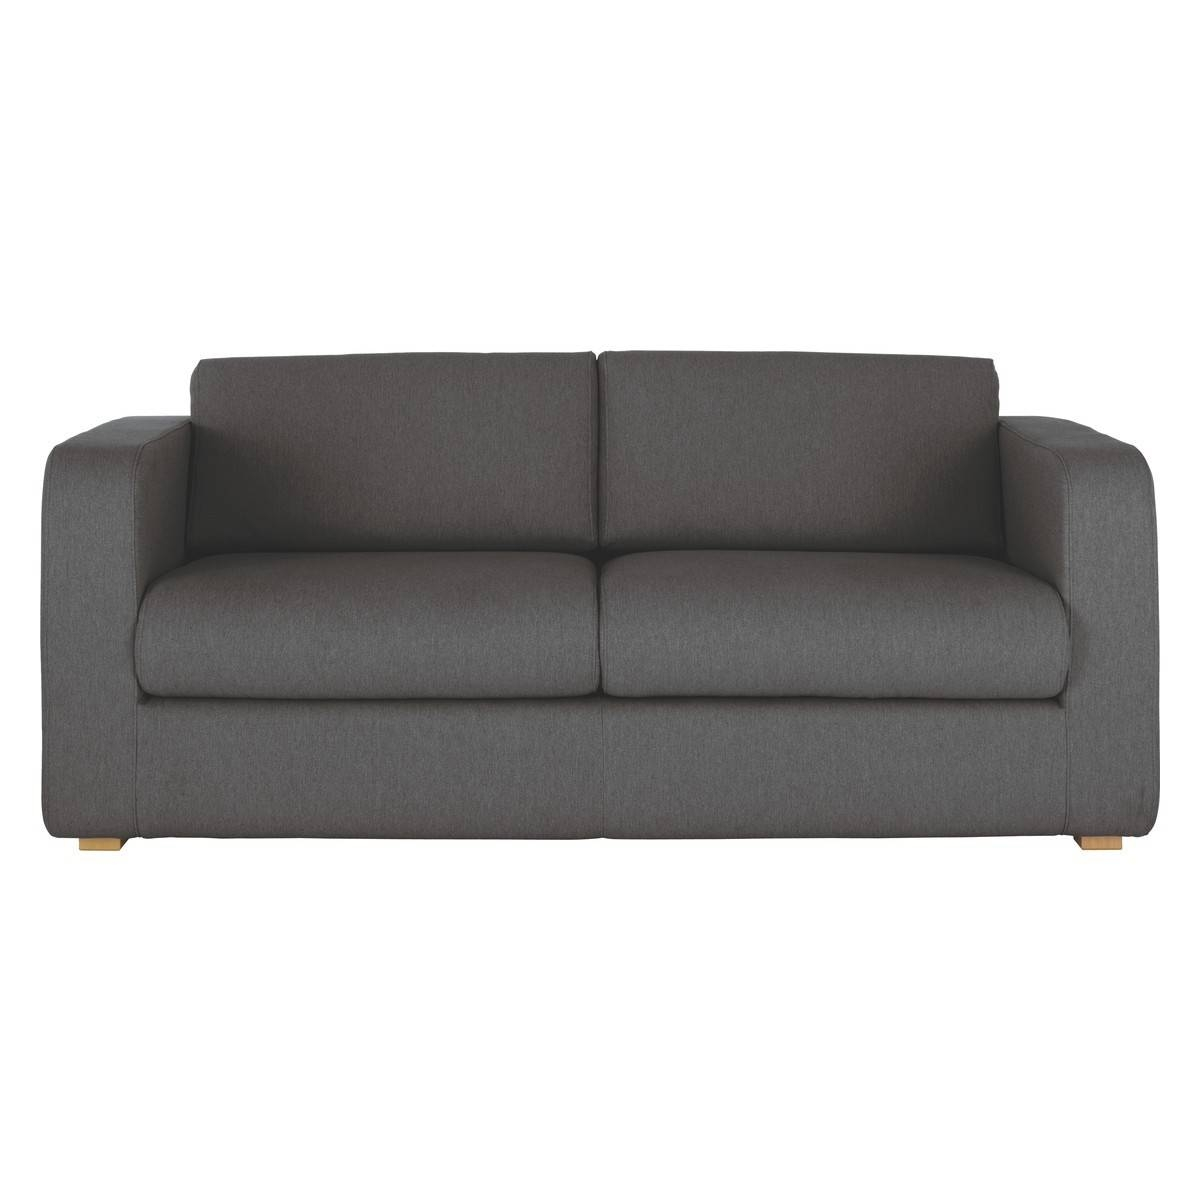 Sofas Center : Birmingham Furniture Cjcfurniture Co Uk Corner Sofa regarding Corner Sofa Bed Sale (Image 25 of 30)